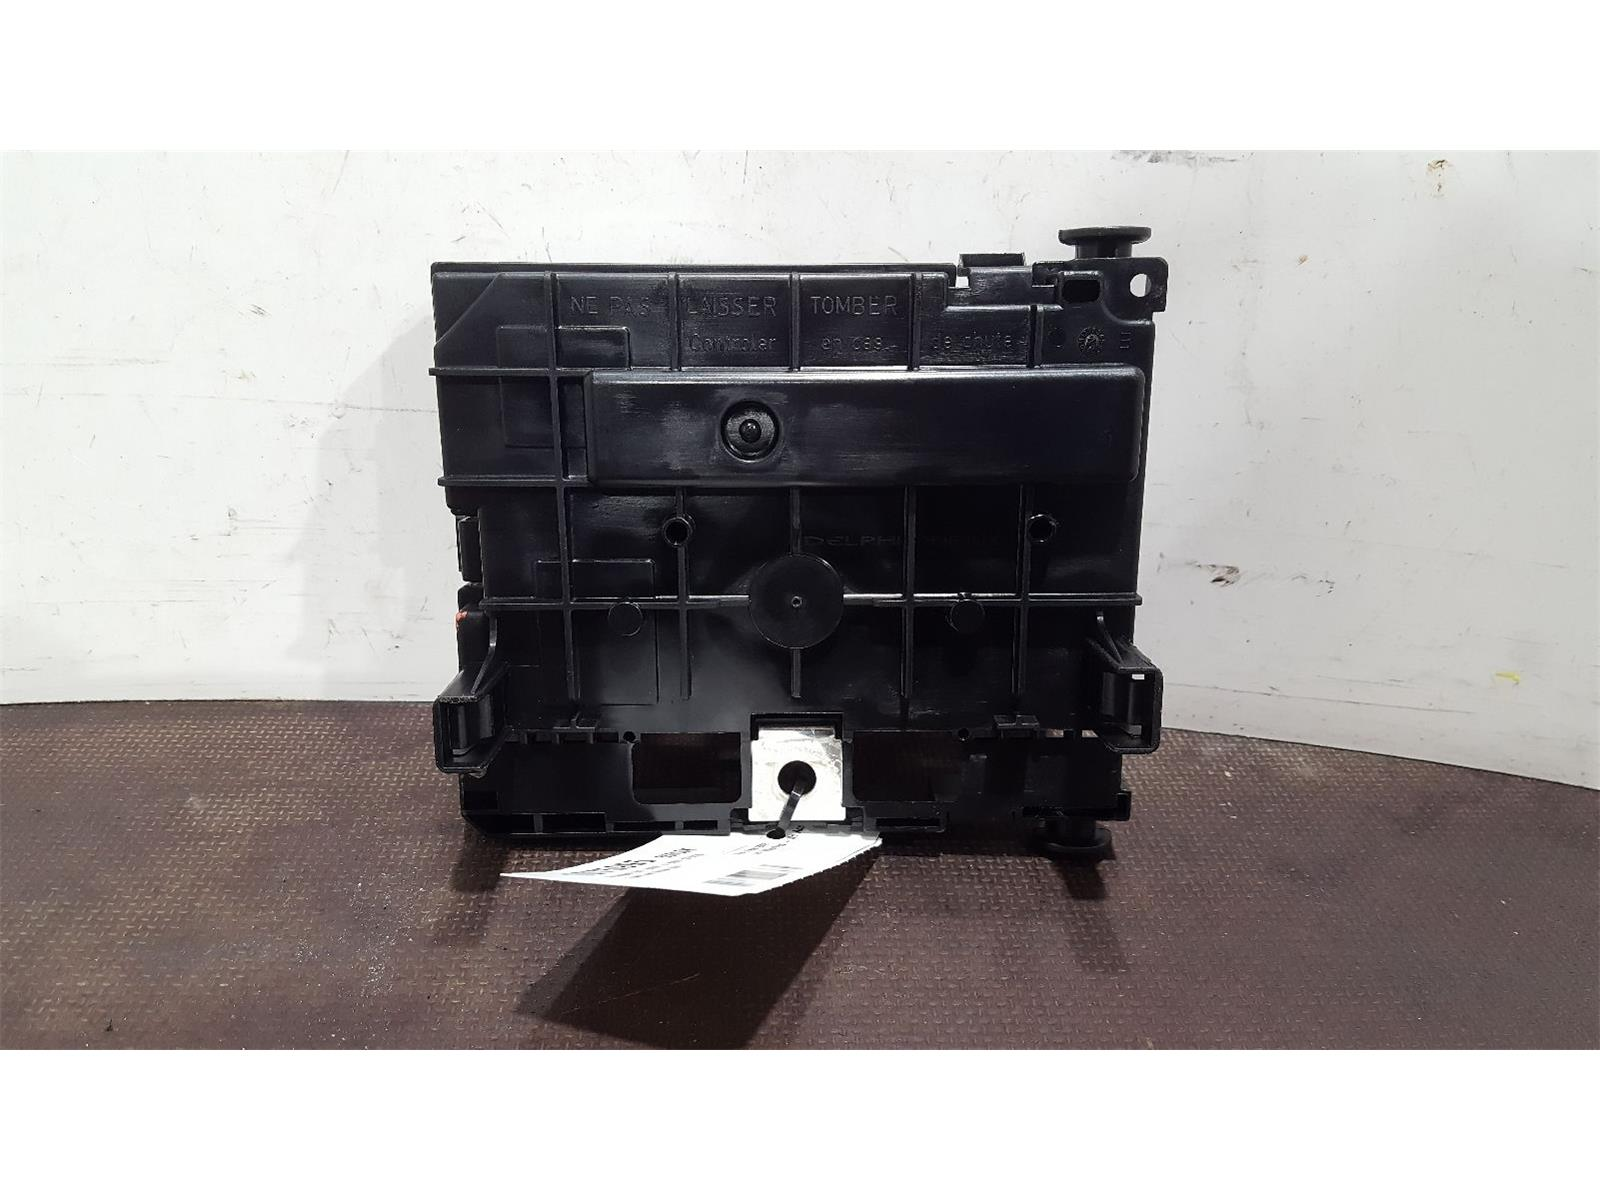 Peugeot 207 2006 To 2009 S Hdi Fuse And Relay Box 1 Used Spare Headlight Parts At Combellack Vehicle Recyclers